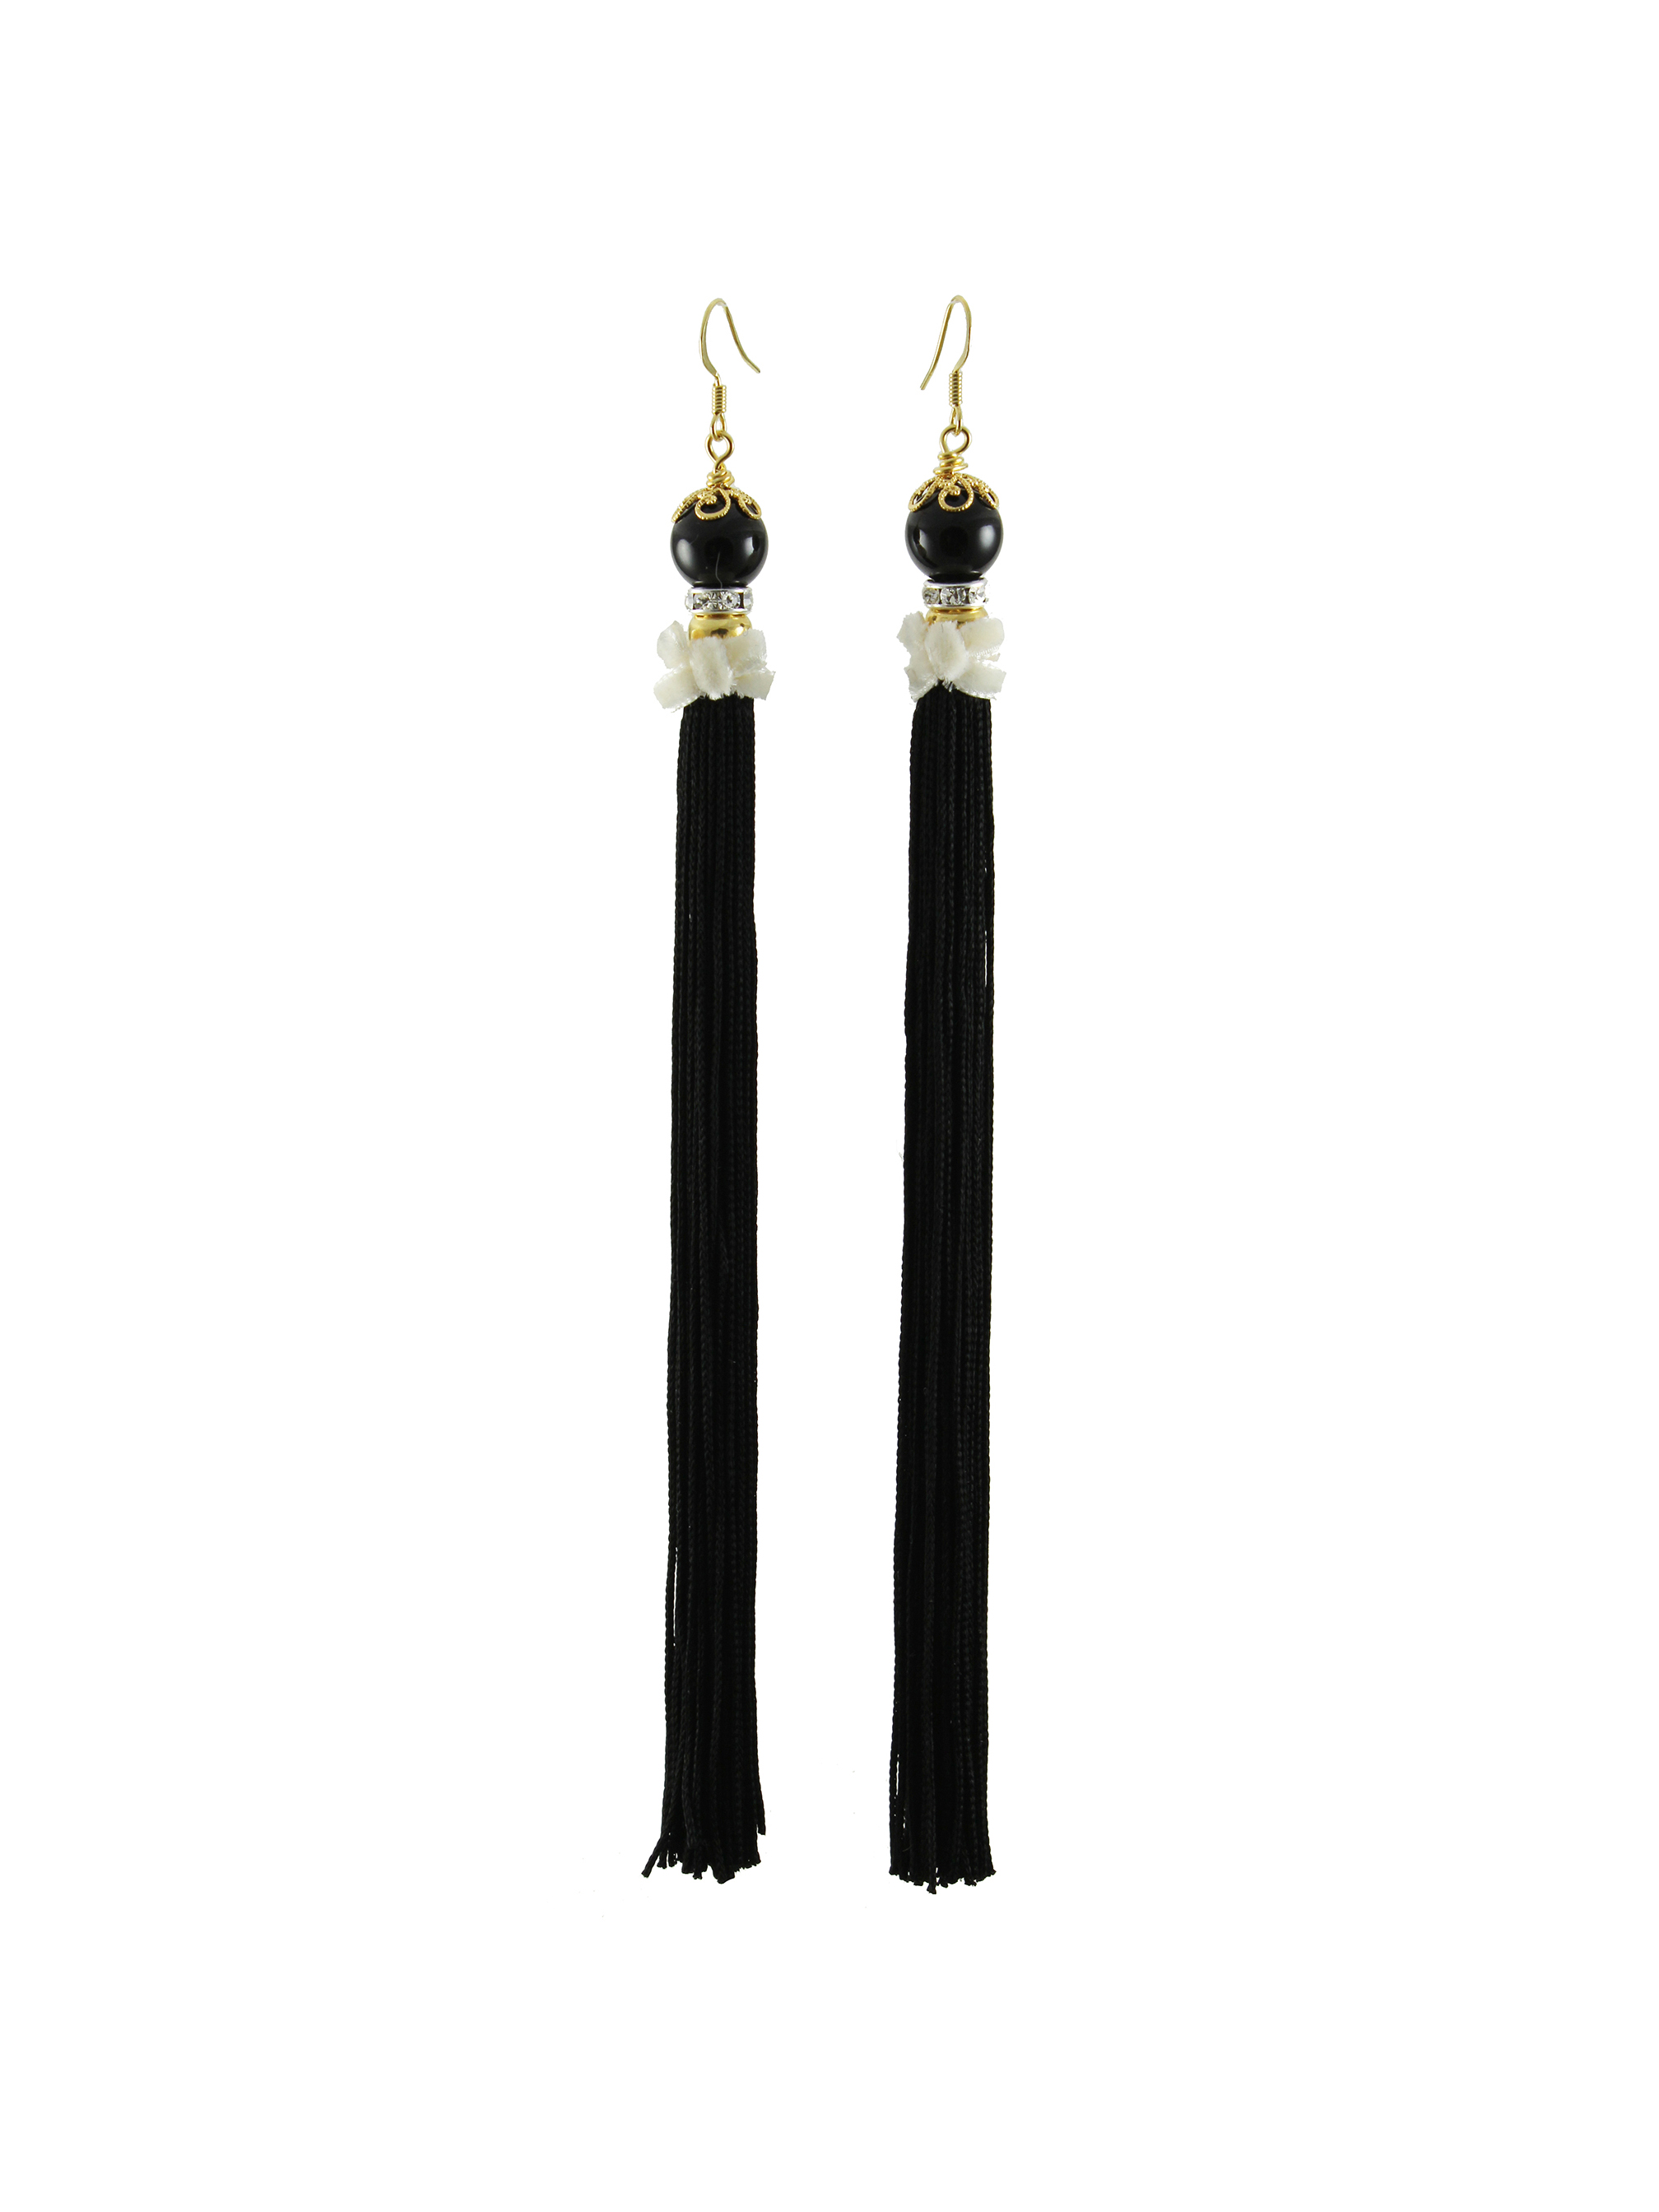 067B - Pearl & Tassel Earrings - Black.jpg